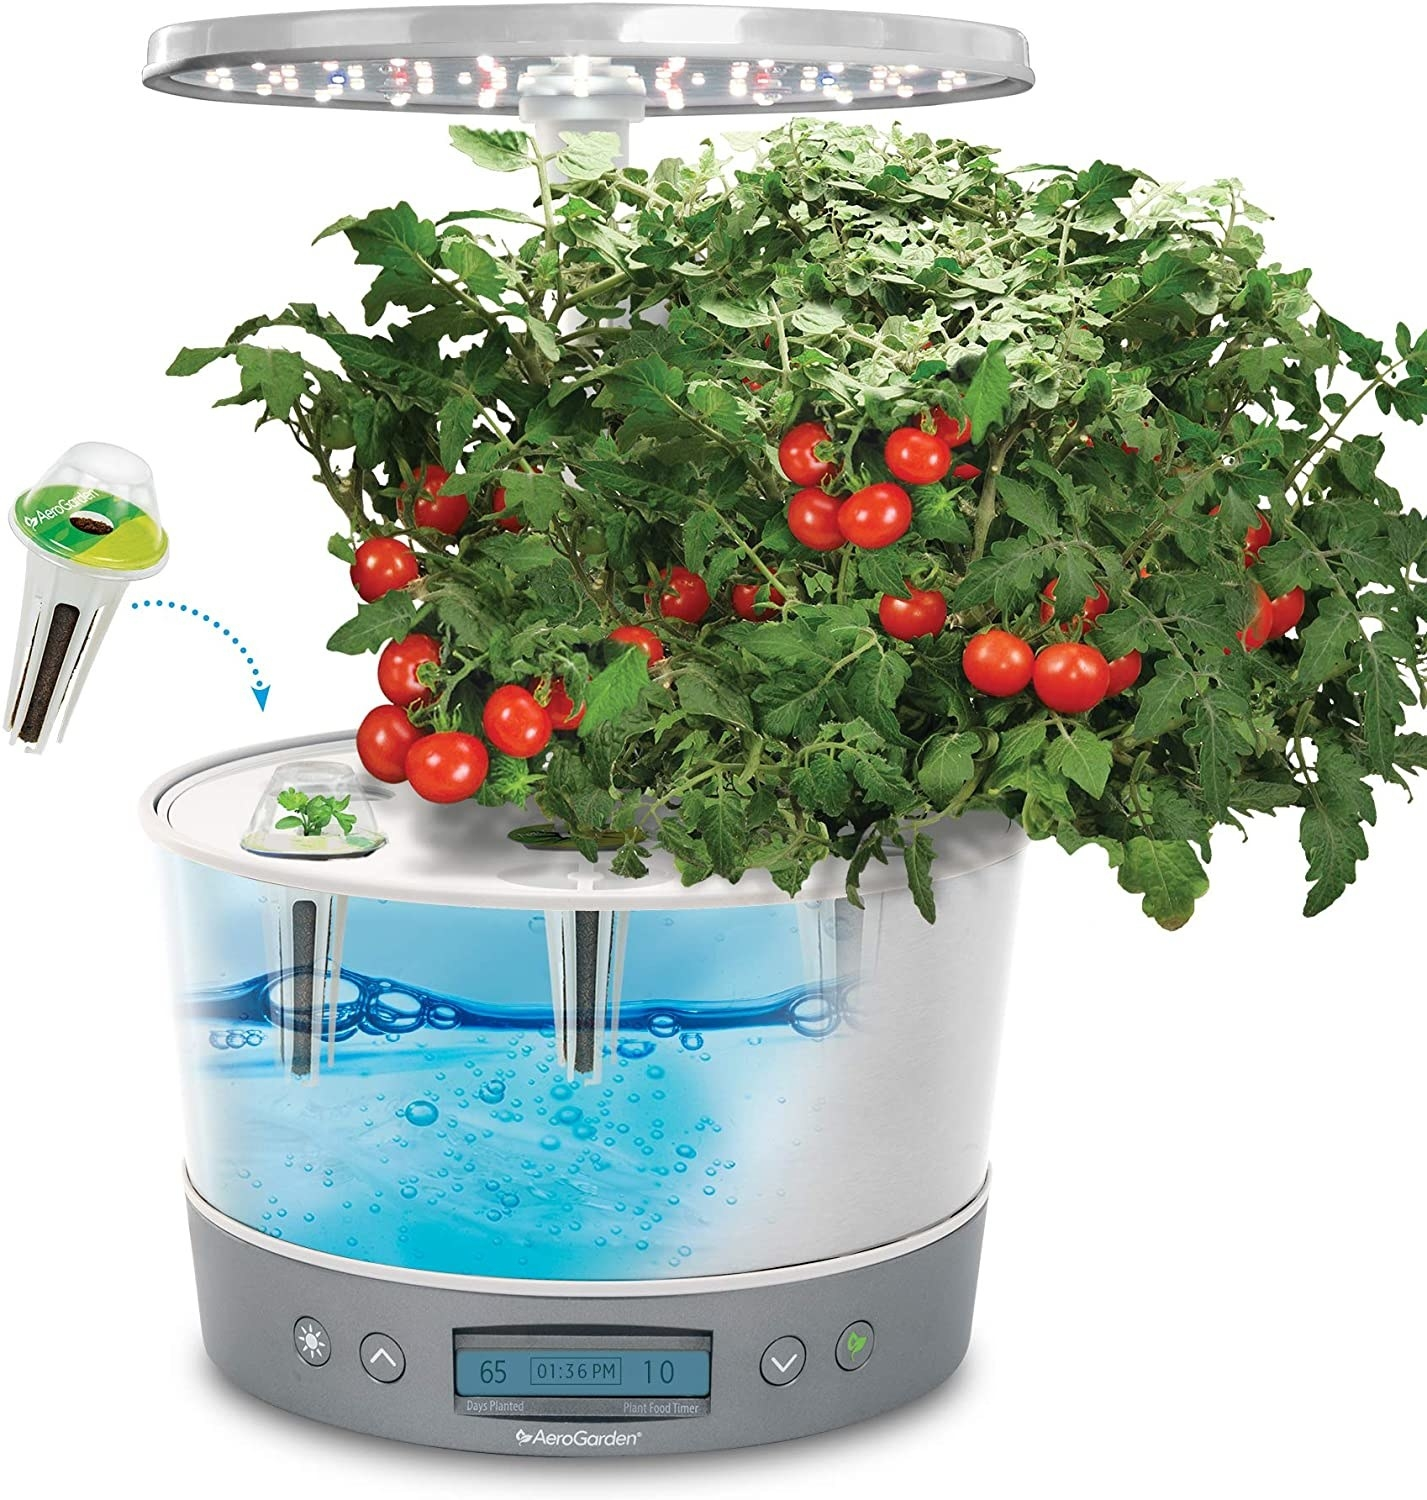 The inside of the Aerogarden filled with water